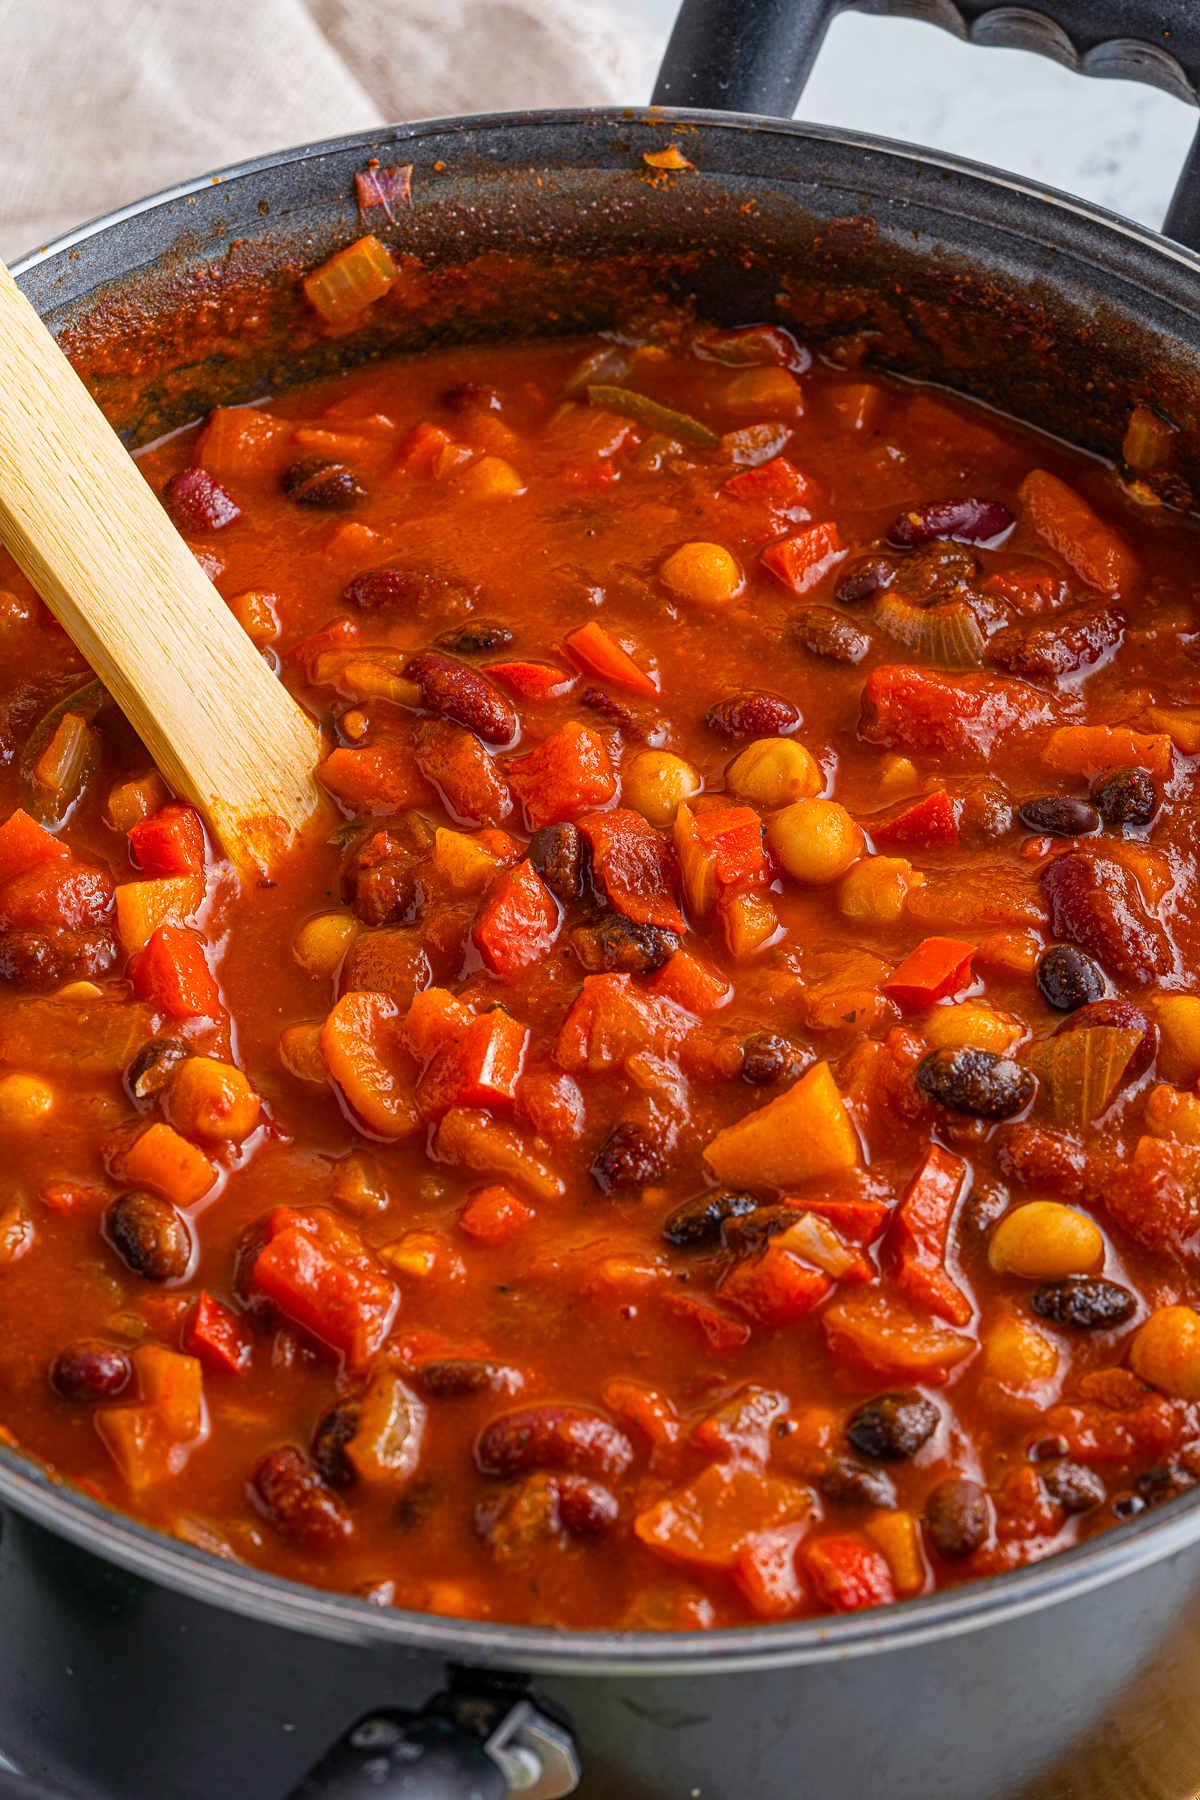 Close up in pot of fininshed Chili with woodenn spoon.